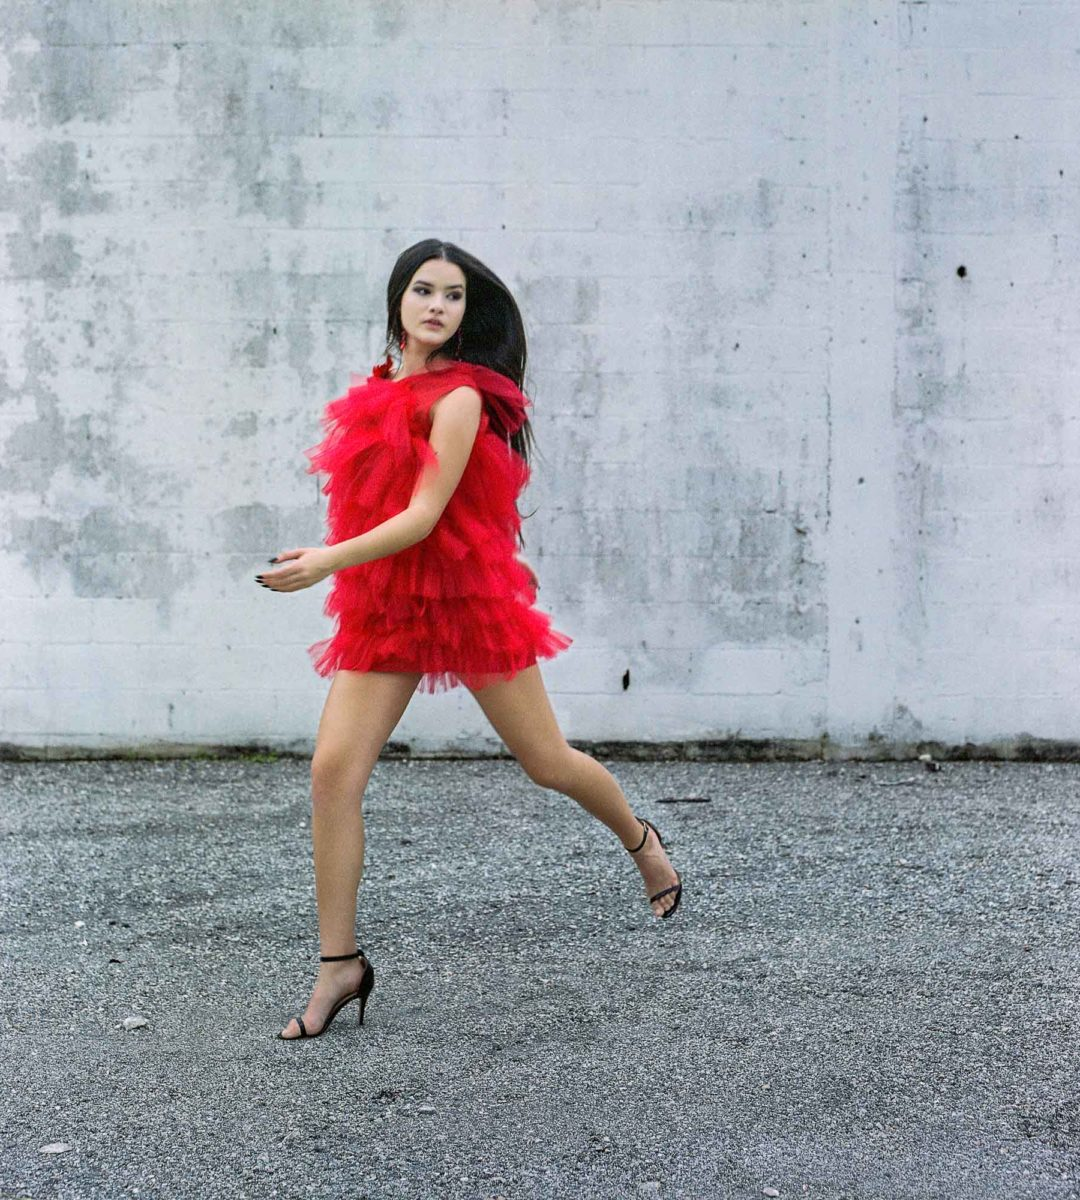 Fashion Photography Of Girl In Red Dress